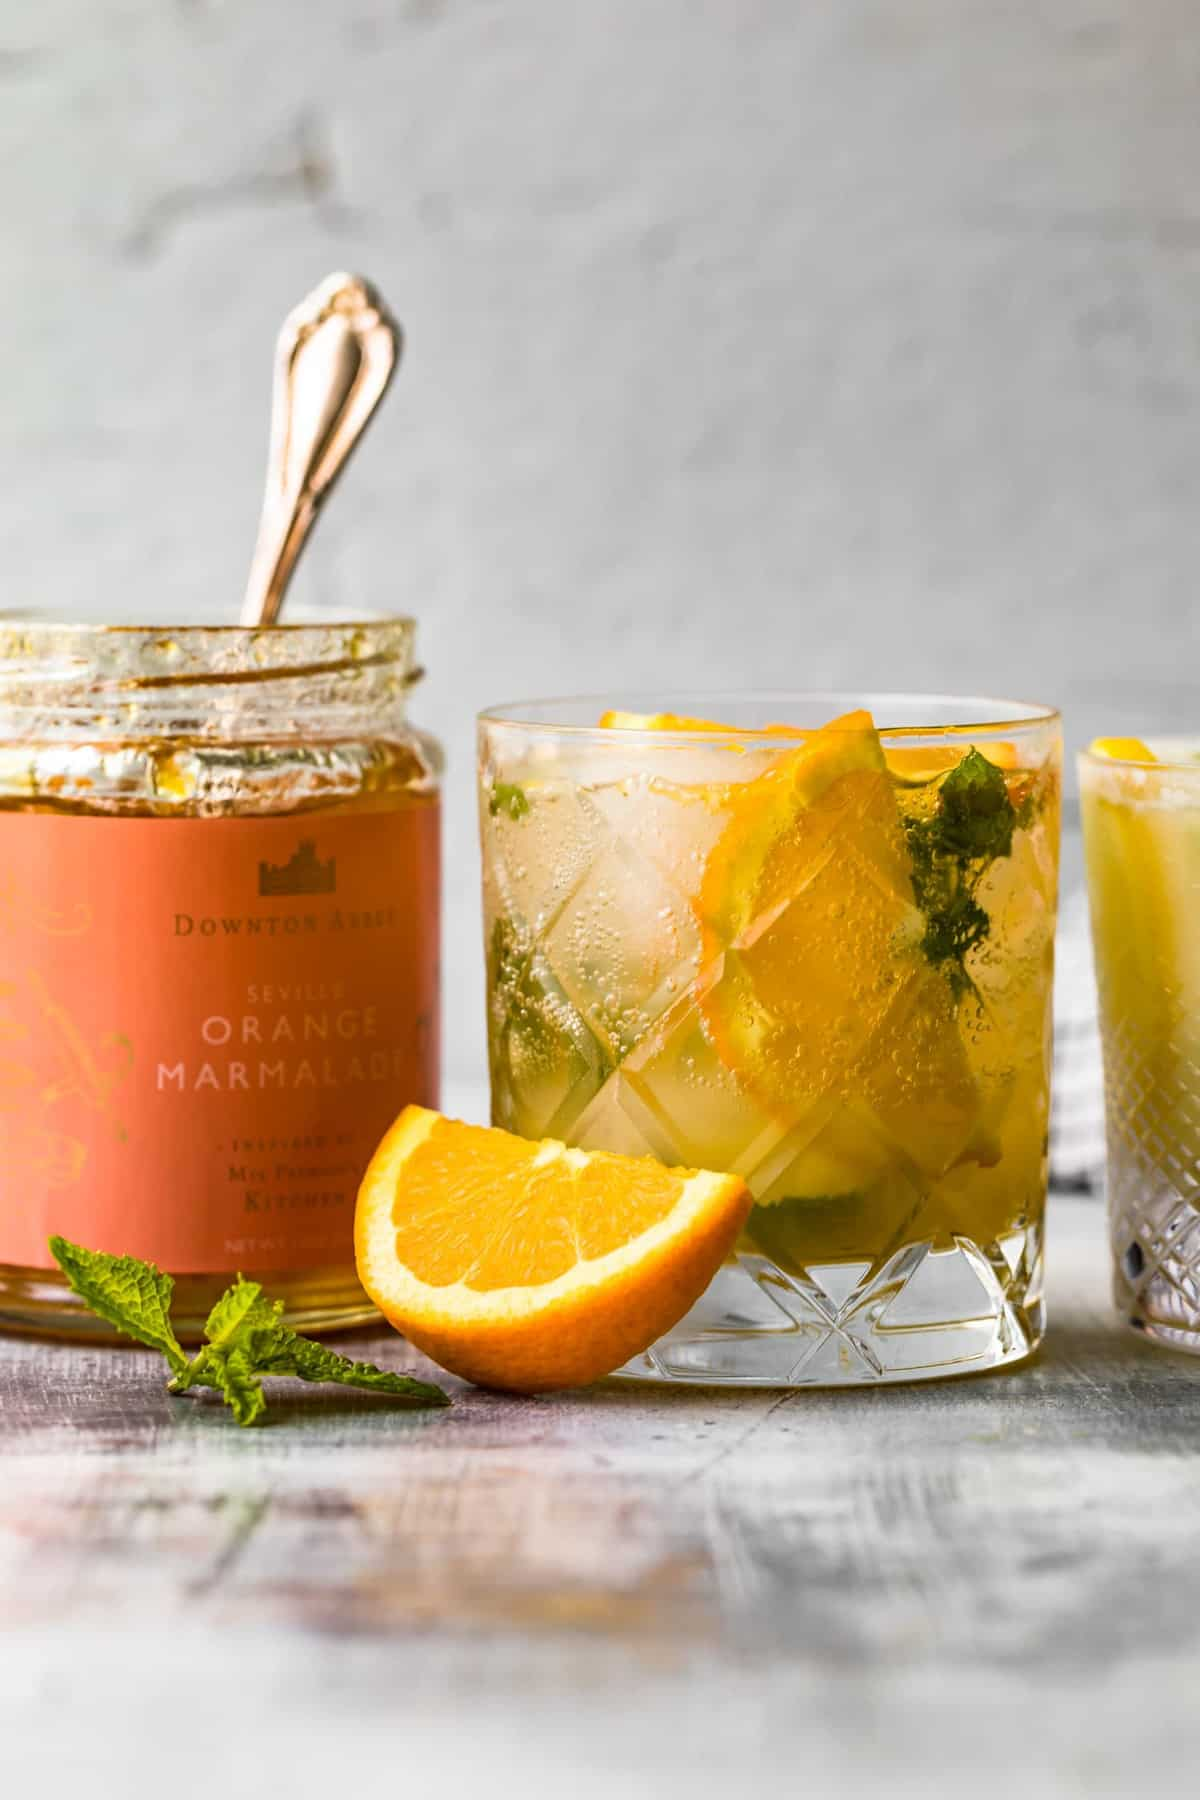 orange marmalade in a jar next to a cocktail on a table with a sliced orange